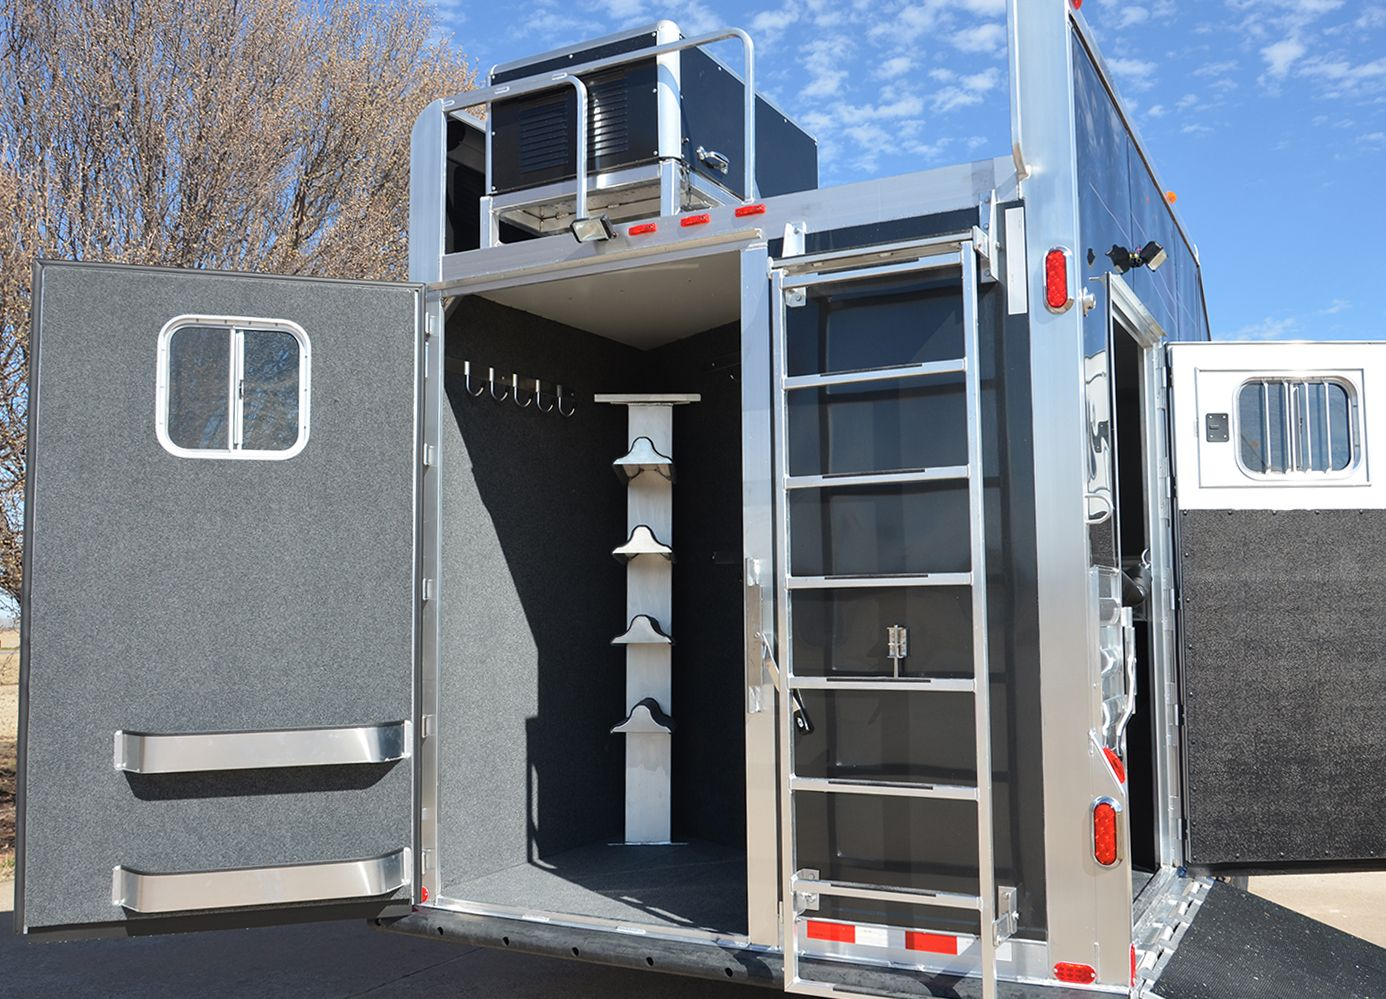 Full Rear Tack In A 4 Star 4h Side Rear Load, Single Rear Tack Gooseneck Trailer Wiring Diagram 6 Pin Trailer Wiring On Full Rear Tack In A 4 Star 4h Side Rear Load, Single Rear Tack Door W Window, Carpet All Walls Including Rear Doors, Floor And Tack, 4 Tier Saddle